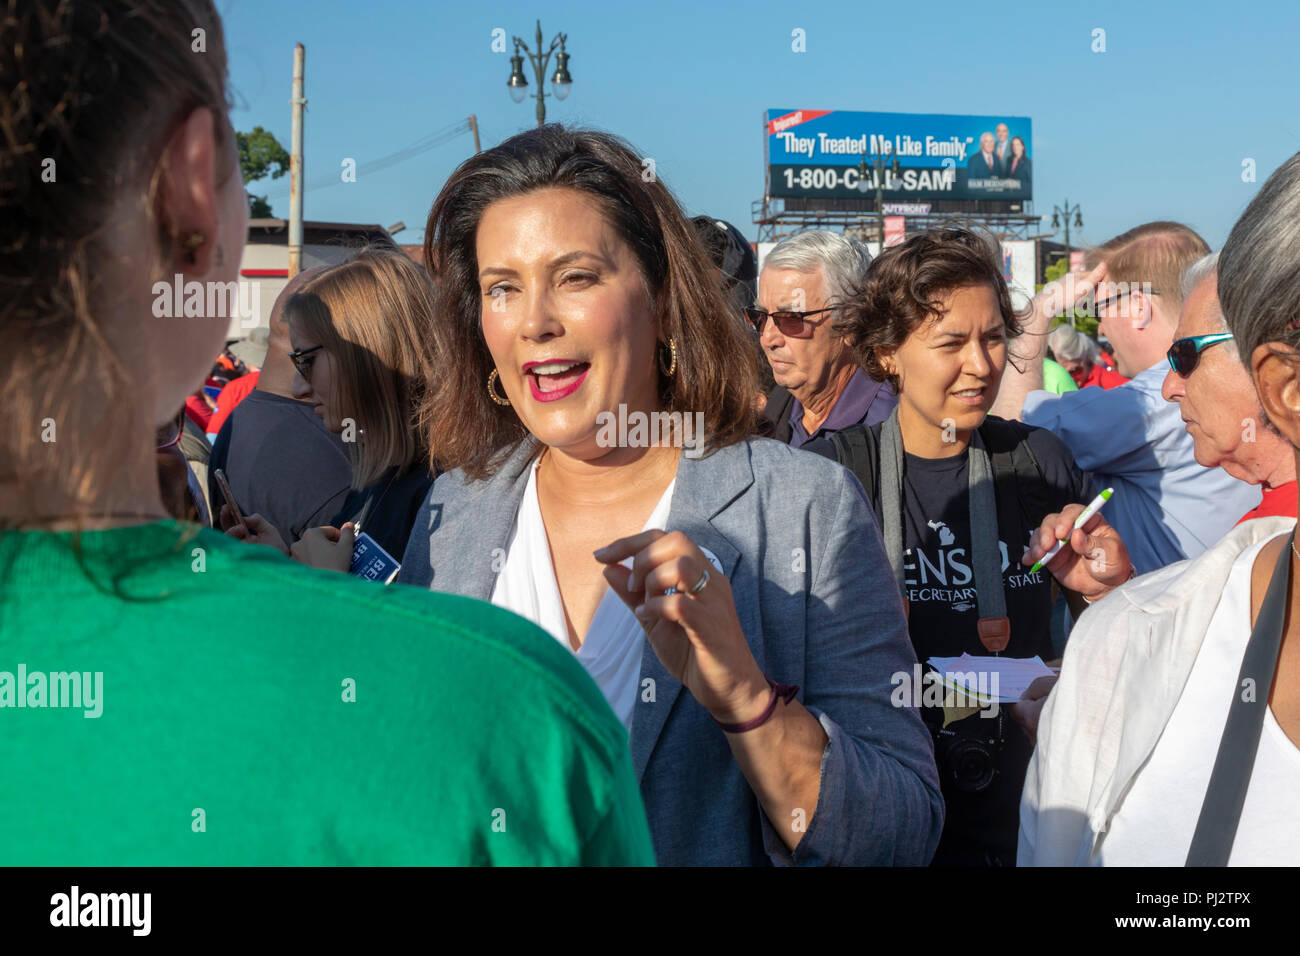 Detroit, Michigan - 3 September 2018 - Gretchen Whitmer, the Democratic candidate for governor of Michigan, campaigns at Detroit's Labor Day parade. Stock Photo